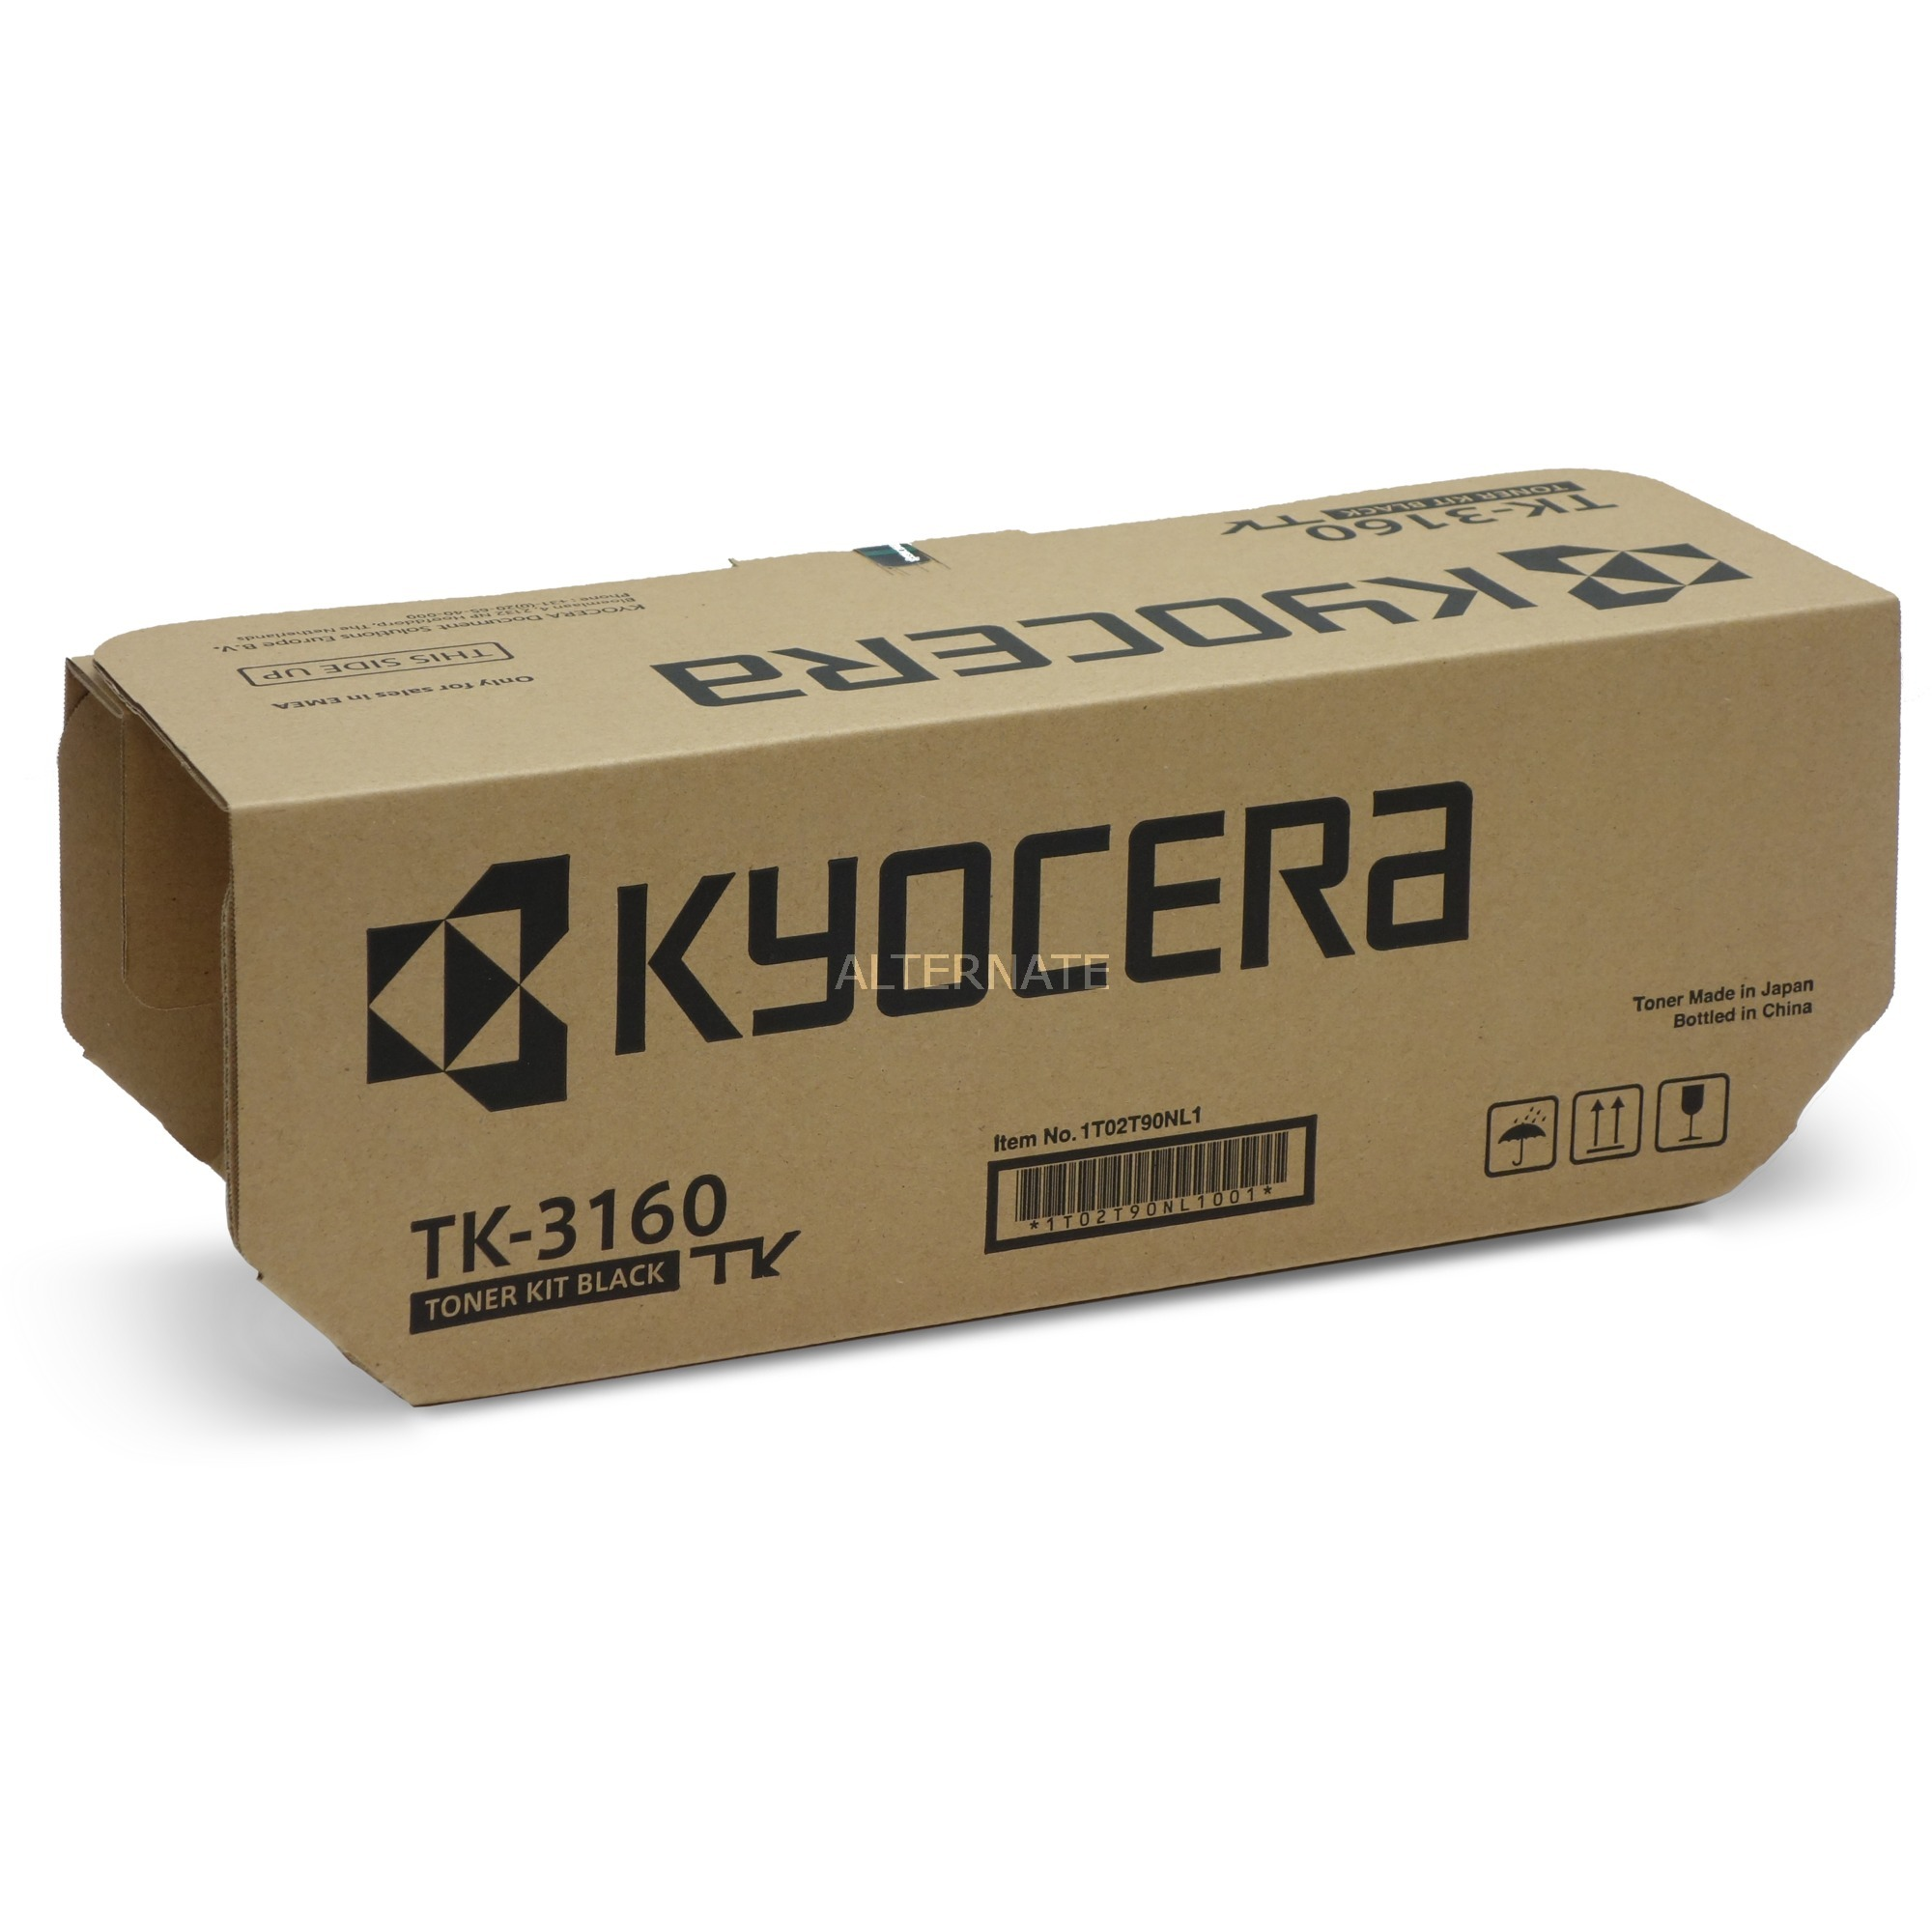 TK-3160 Toner laser 12500pages Noir